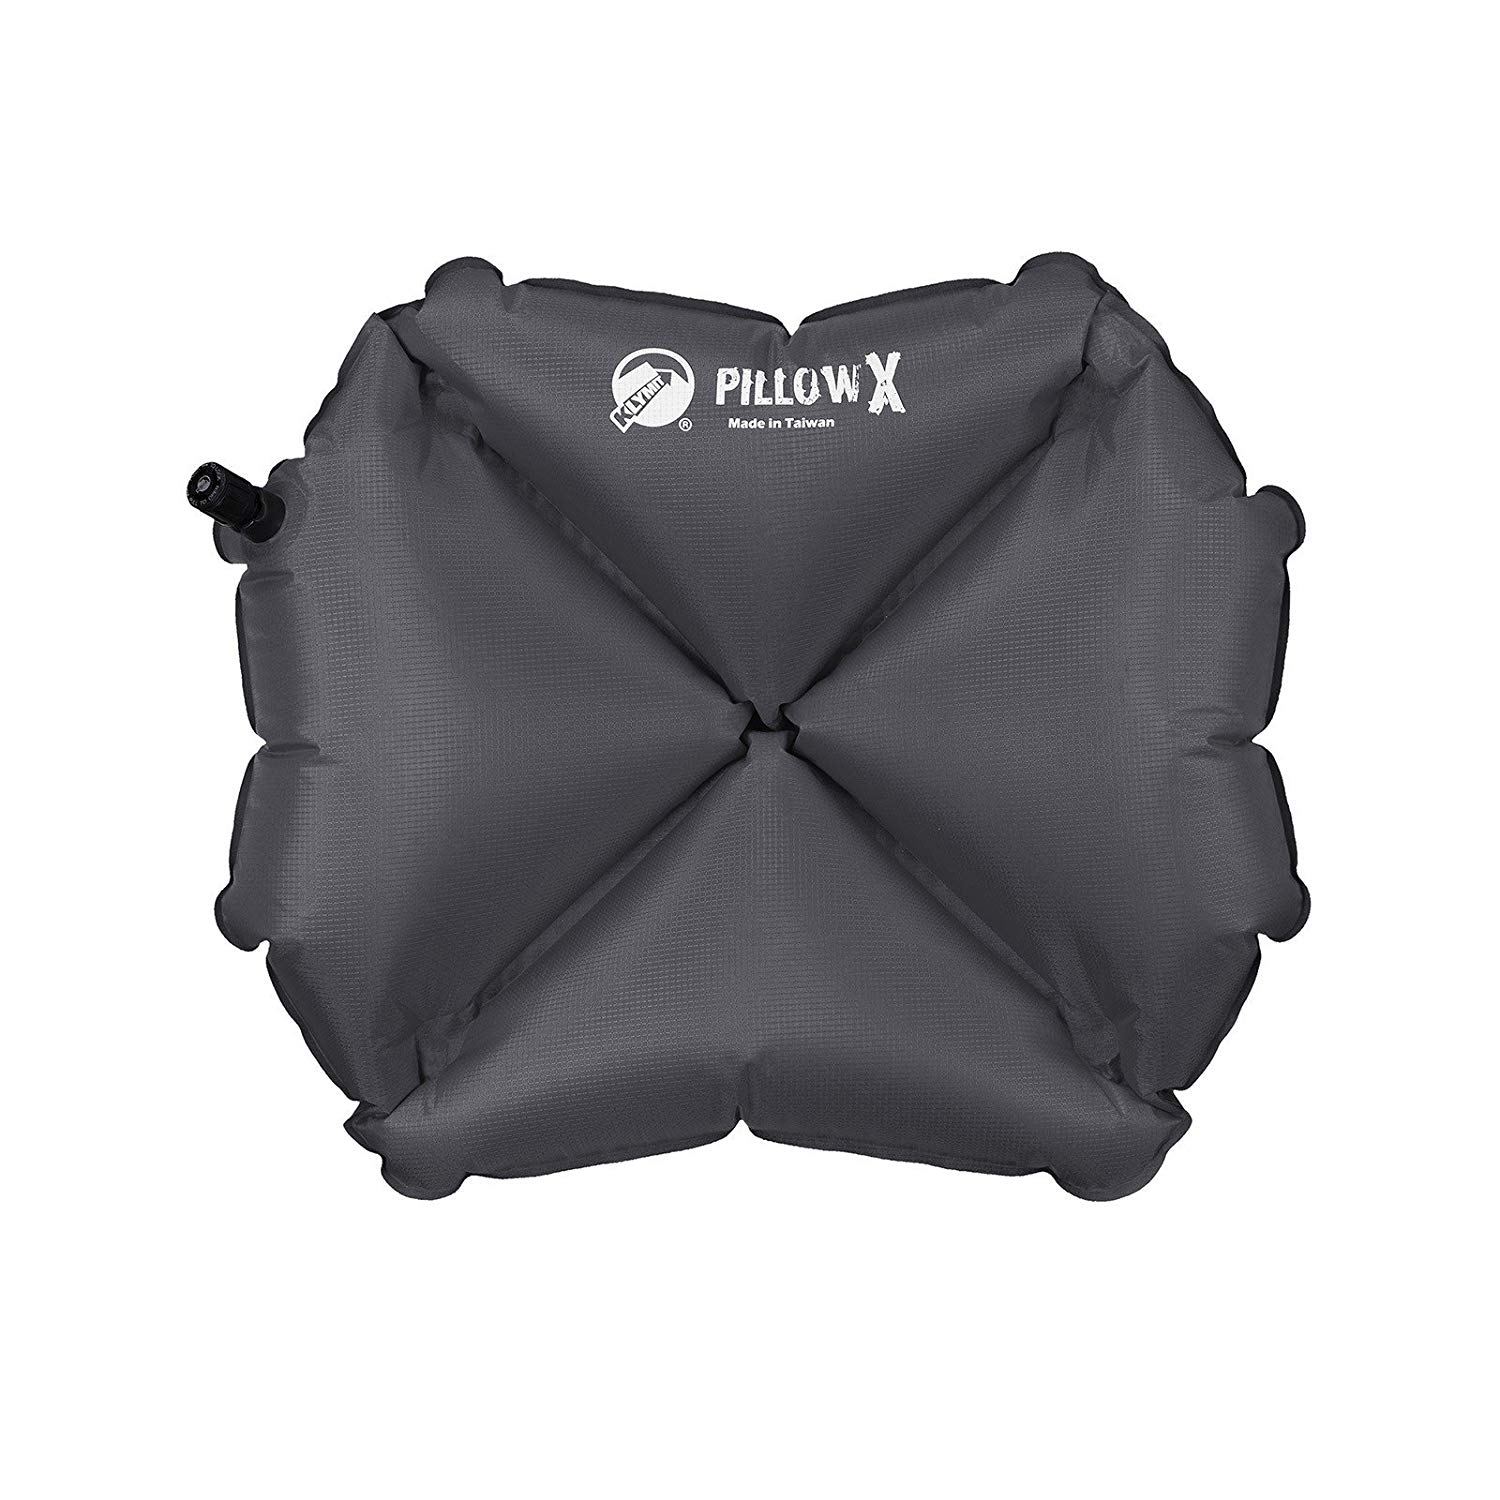 Pillow X Inflatable Camp & Travel Pillow (Charcoal), Superior resistance to tear, abrasion and puncture By Klymit